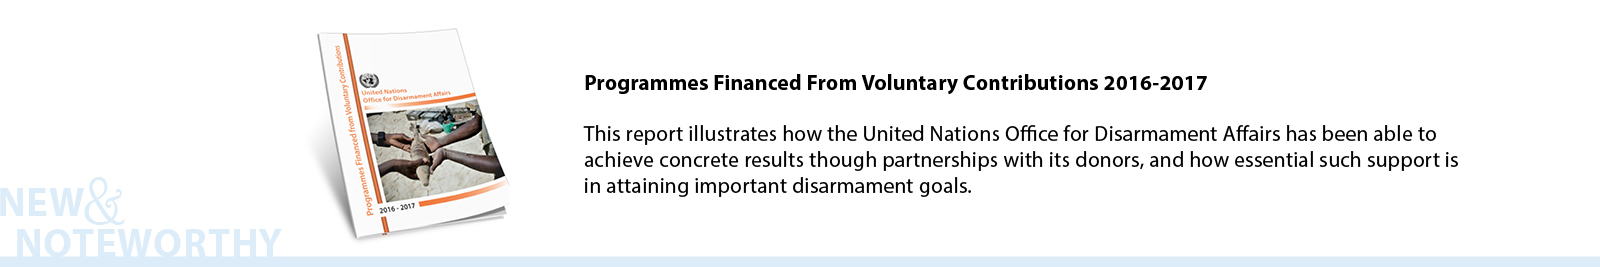 This report illustrates how the United Nations Office for Disarmament Affairs has been able to achieve concrete results through partnerships with its donors, and how essential such support is in attaining important disarmament goals.